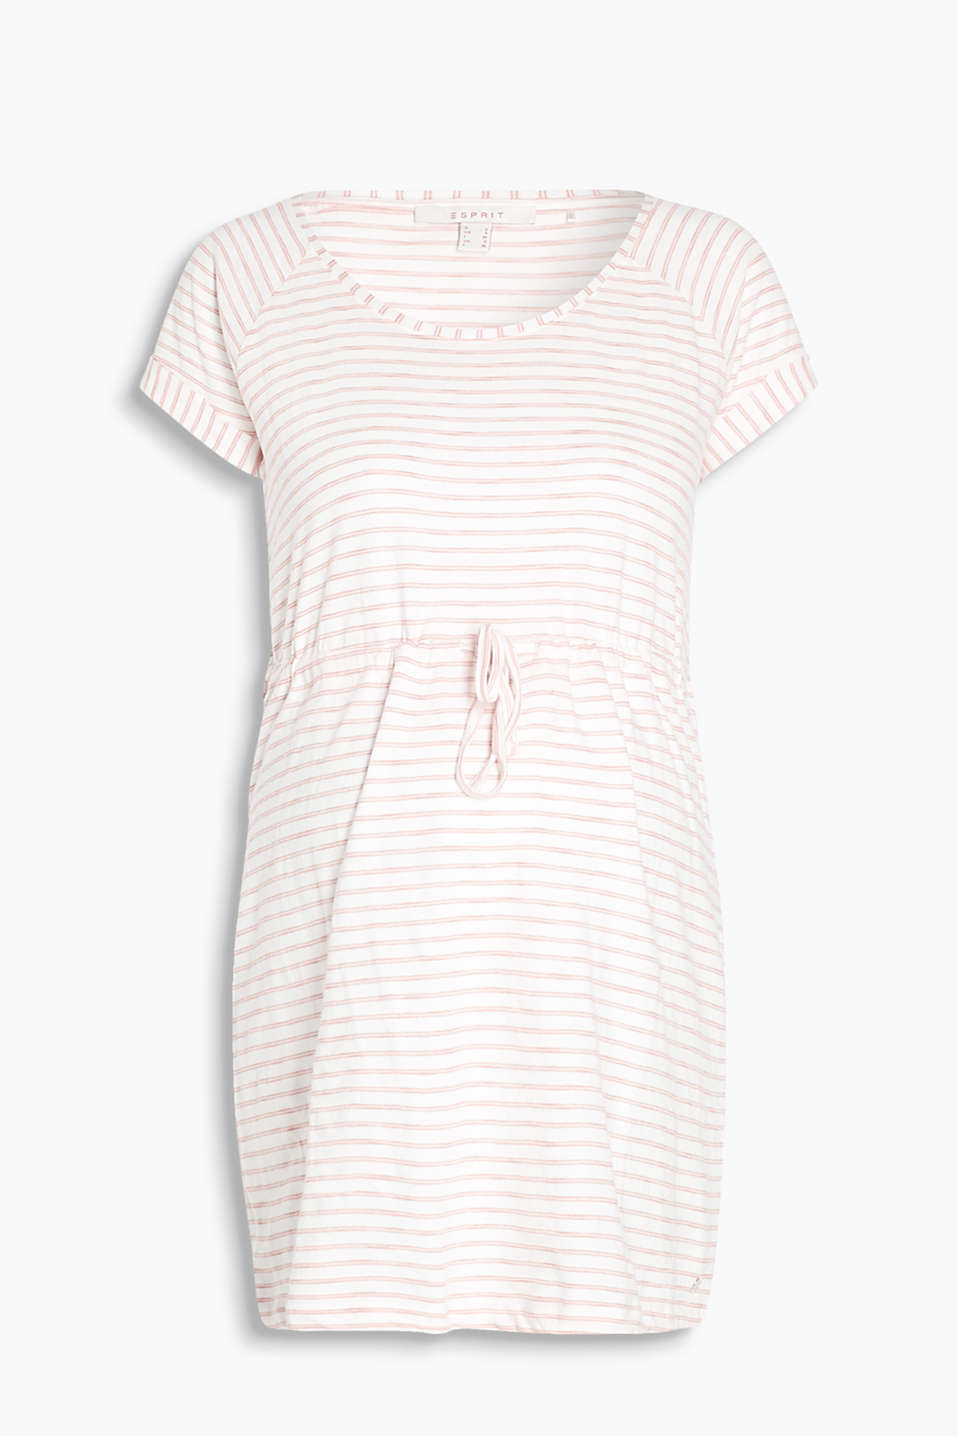 Versatile soft jersey tunic top with a drawstring waist